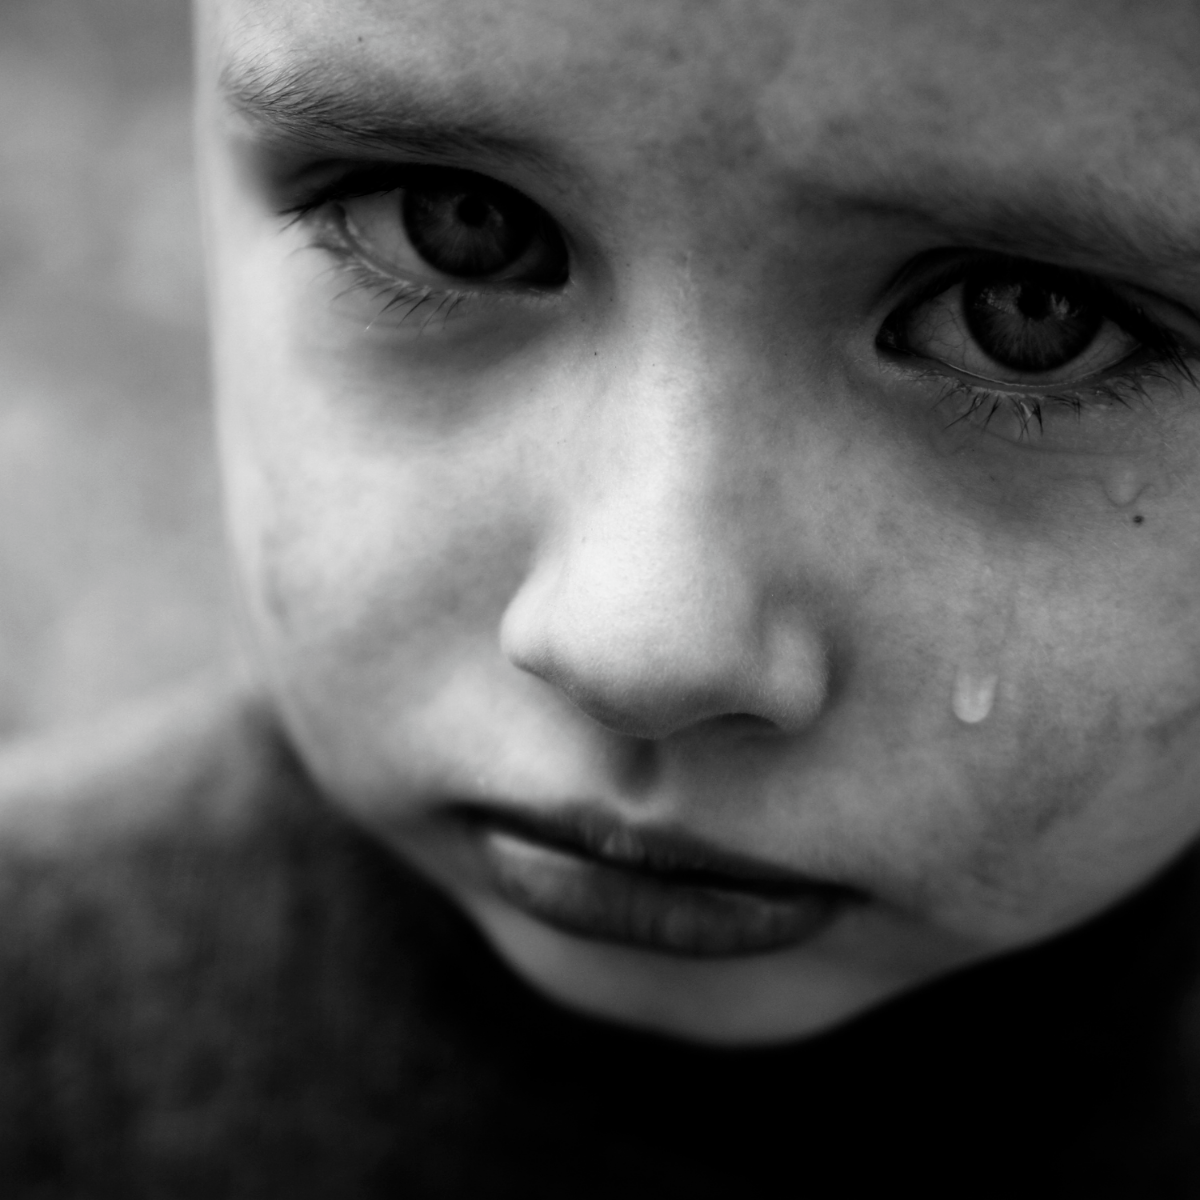 The warning signs of child abuse